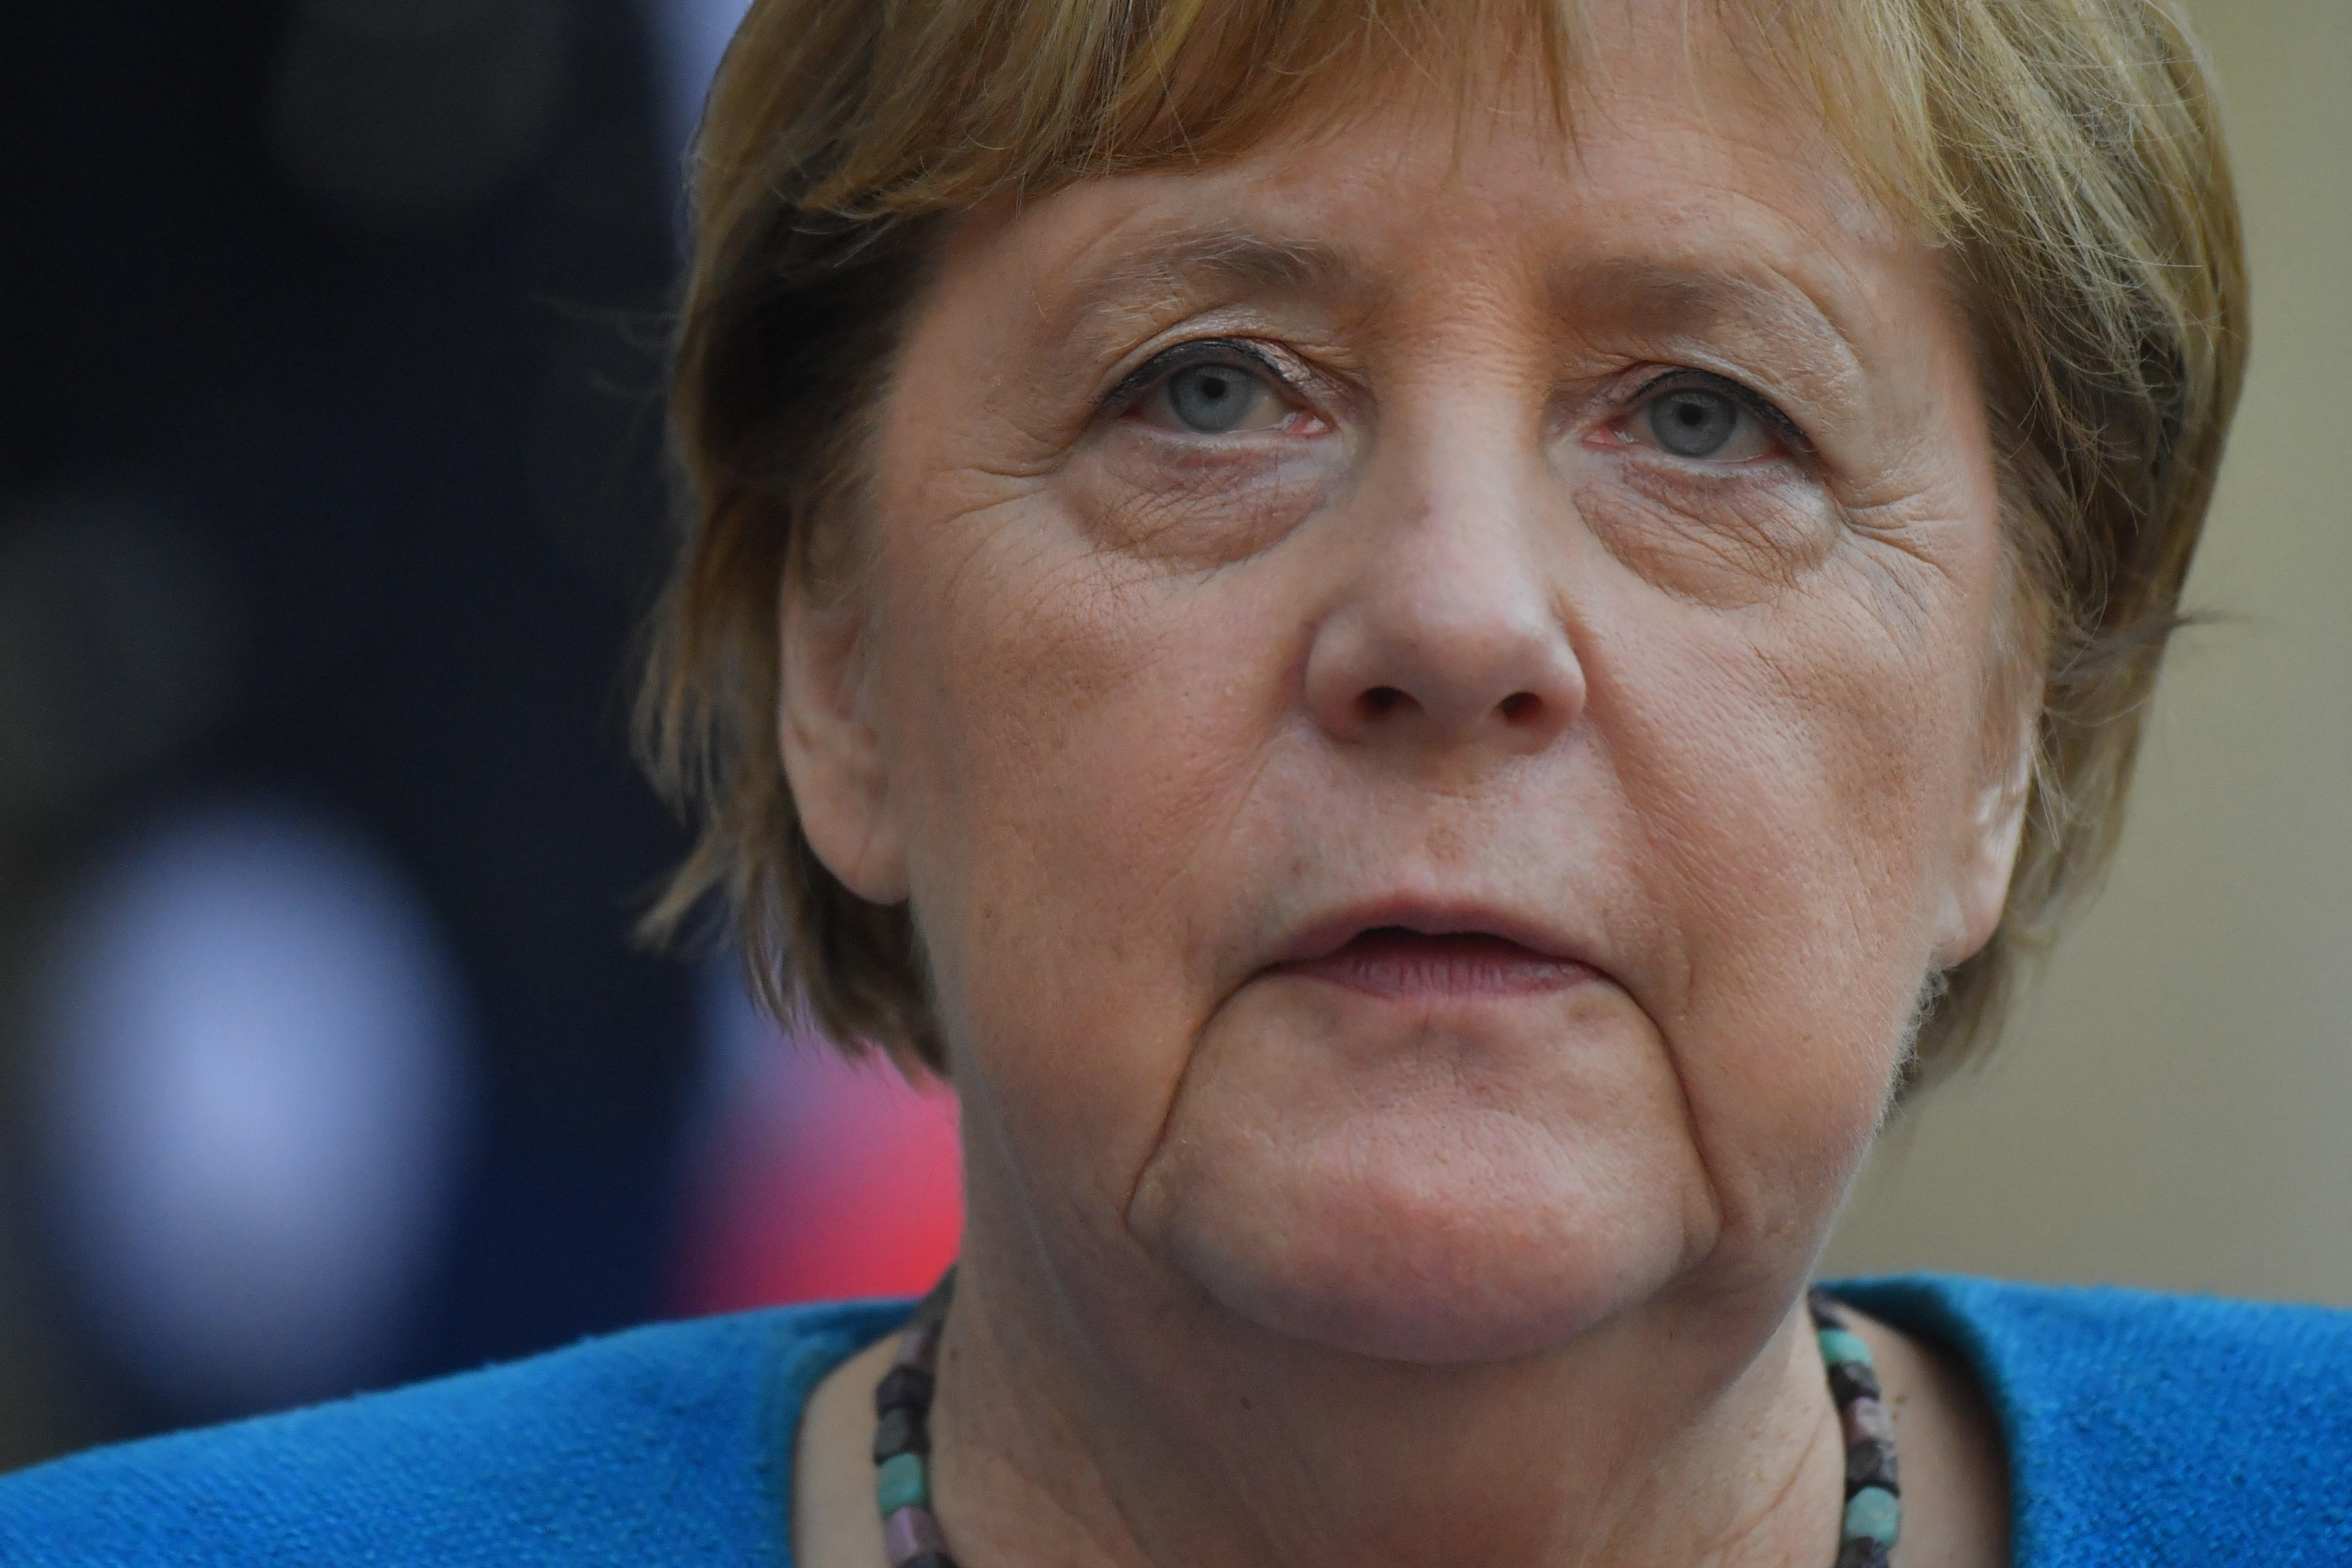 Merkel's bloc sees worst election result since 1949 as Germany's Social Democrats rise